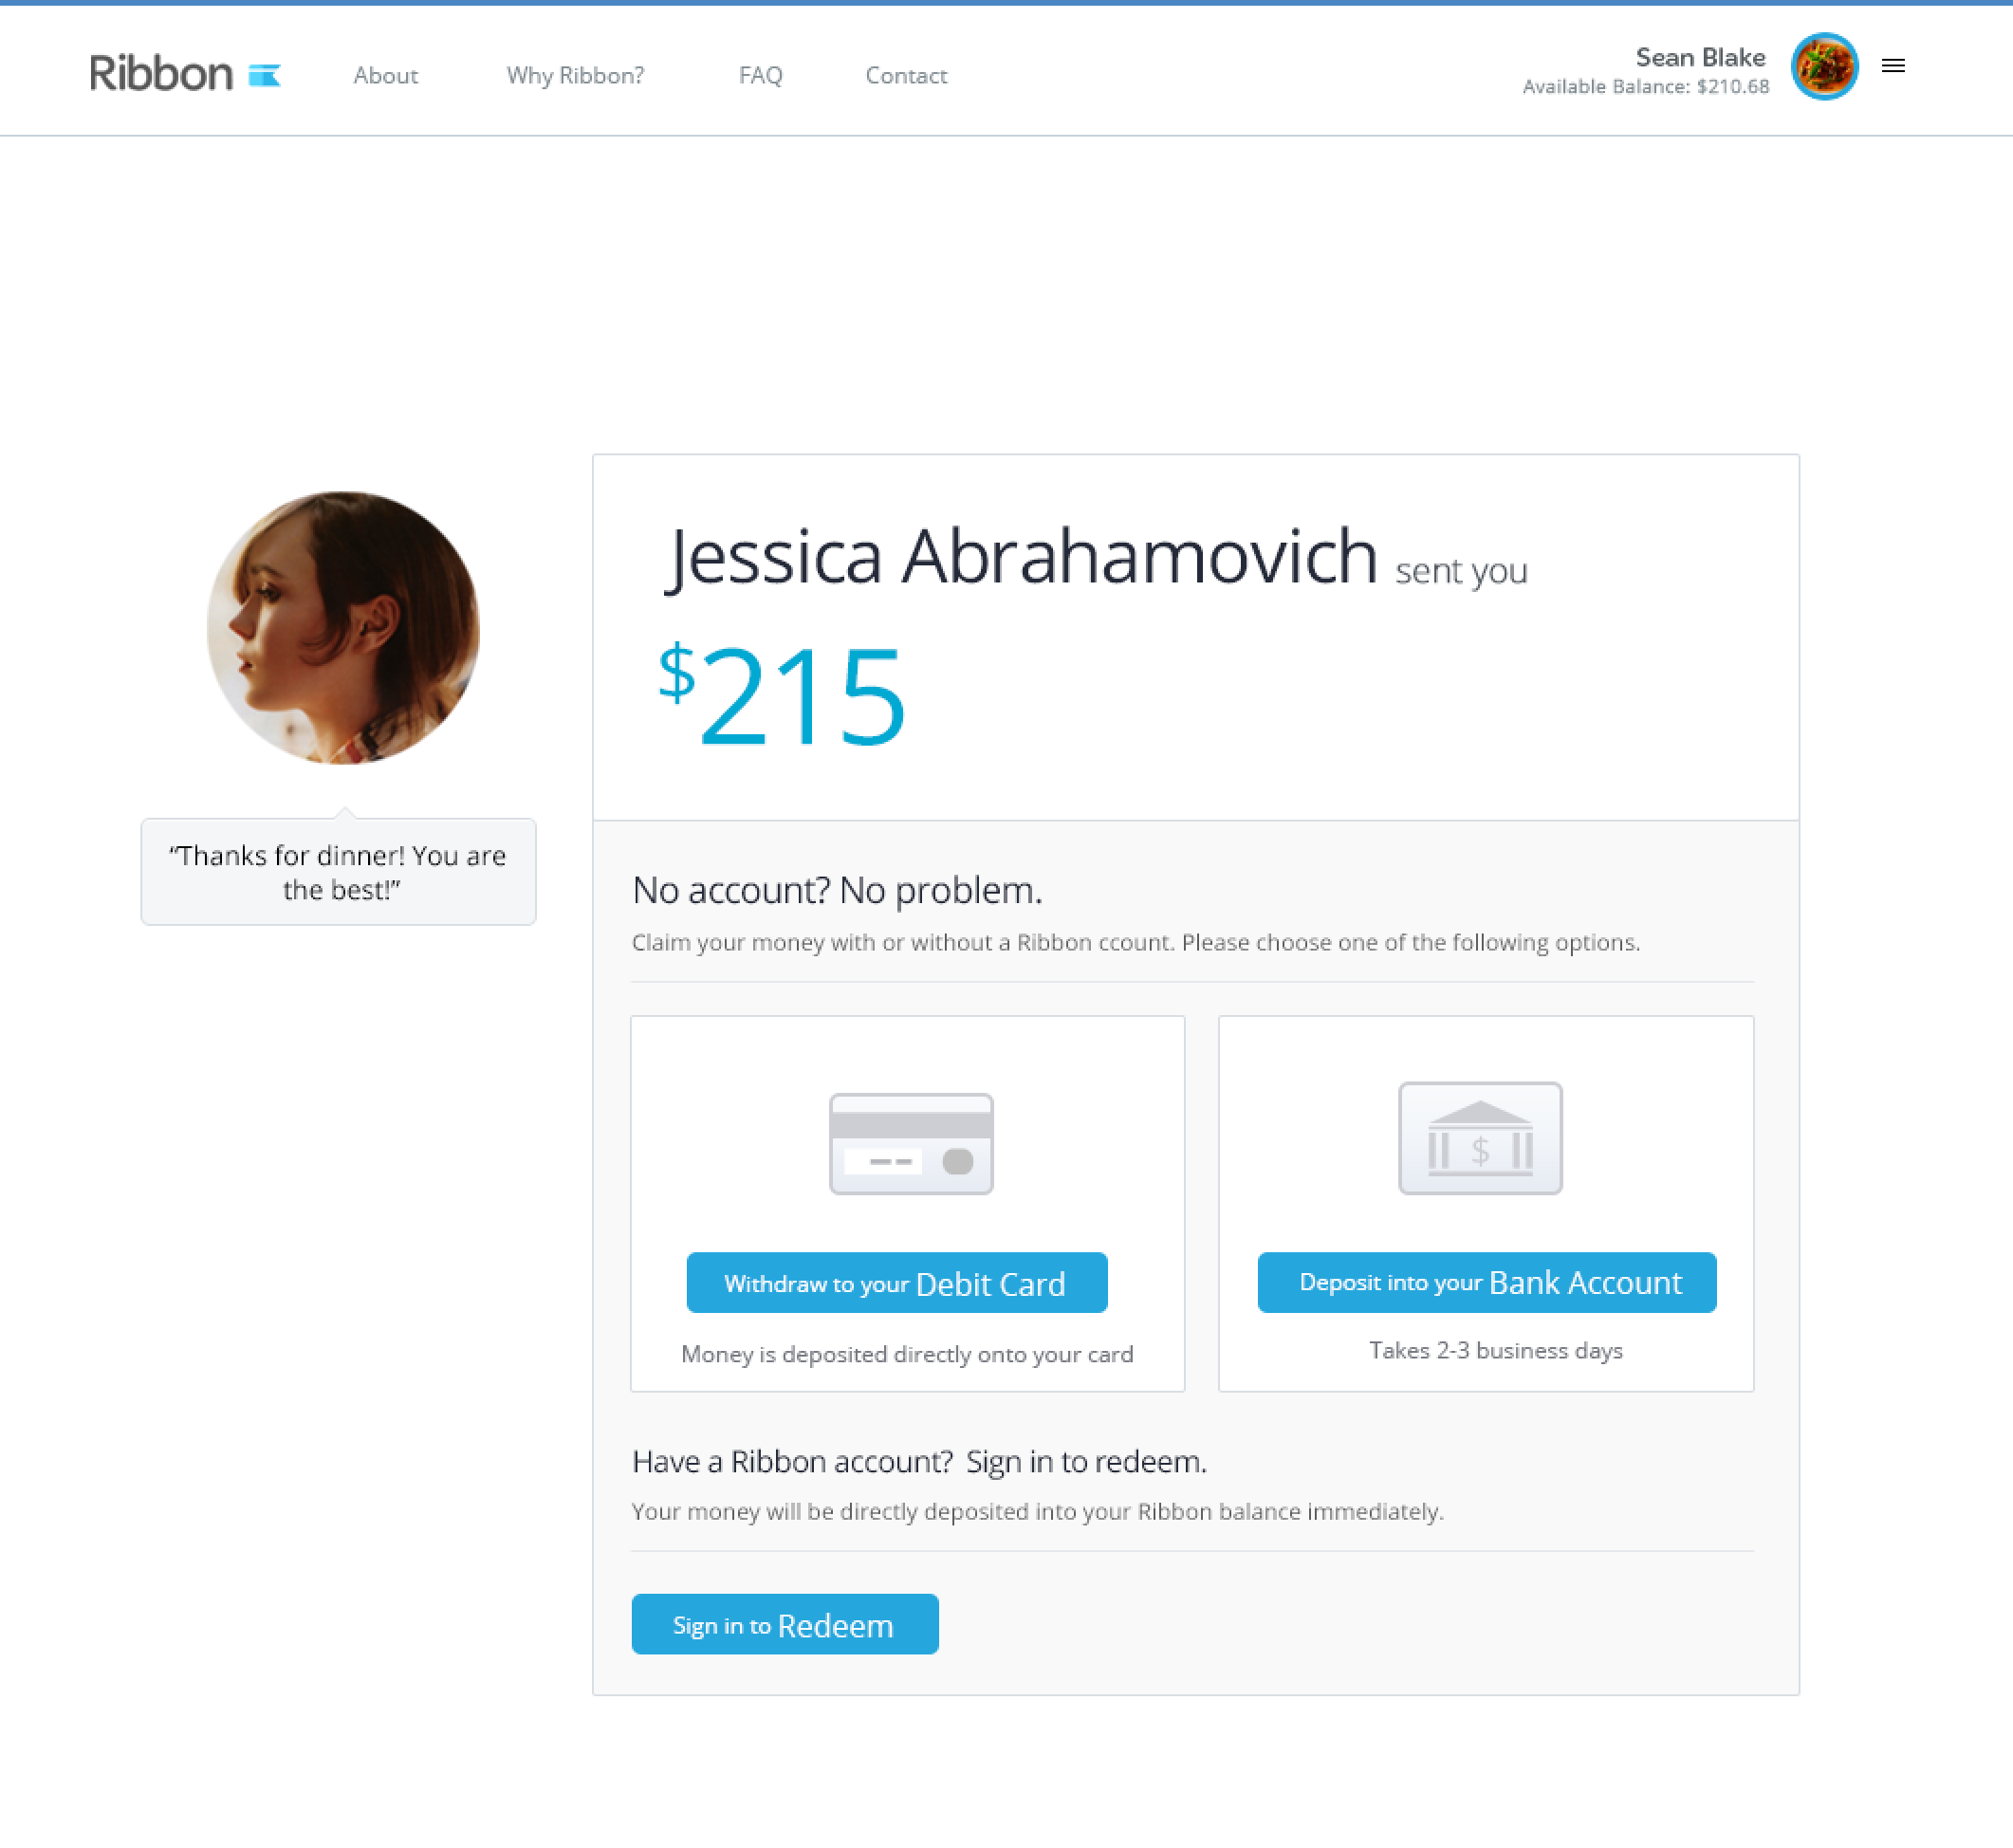 Ribbon Unveils Its Account-Free Consumer Peer-To-Peer Payment Product